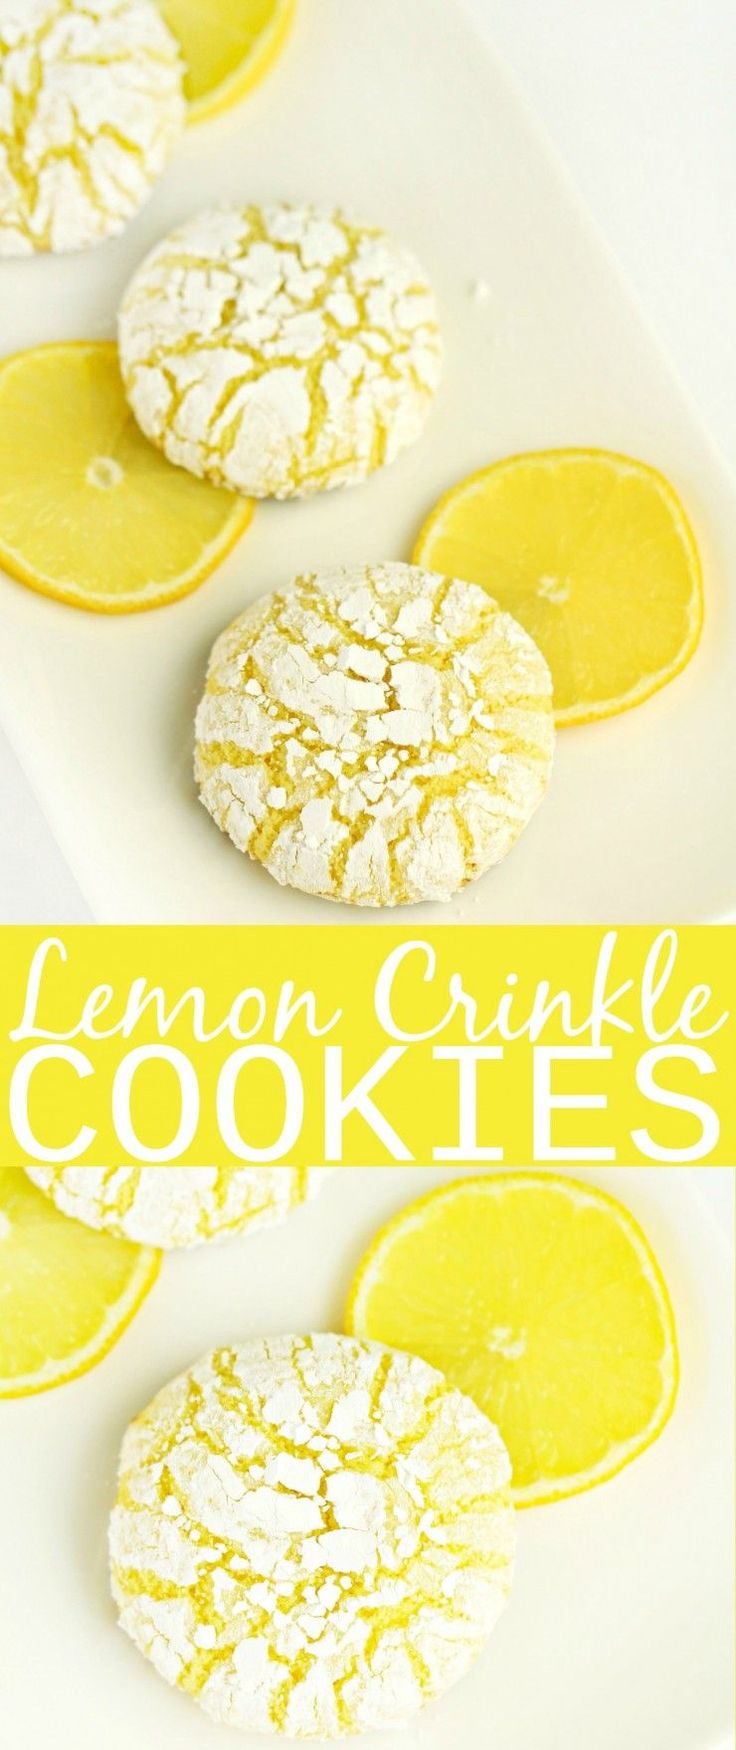 These melt-in-your-mouth Lemon Crinkle Cookies are absolutely dreamy. This cookie recipe is one of my favourites, I could have these for dessert everyday and be happy!